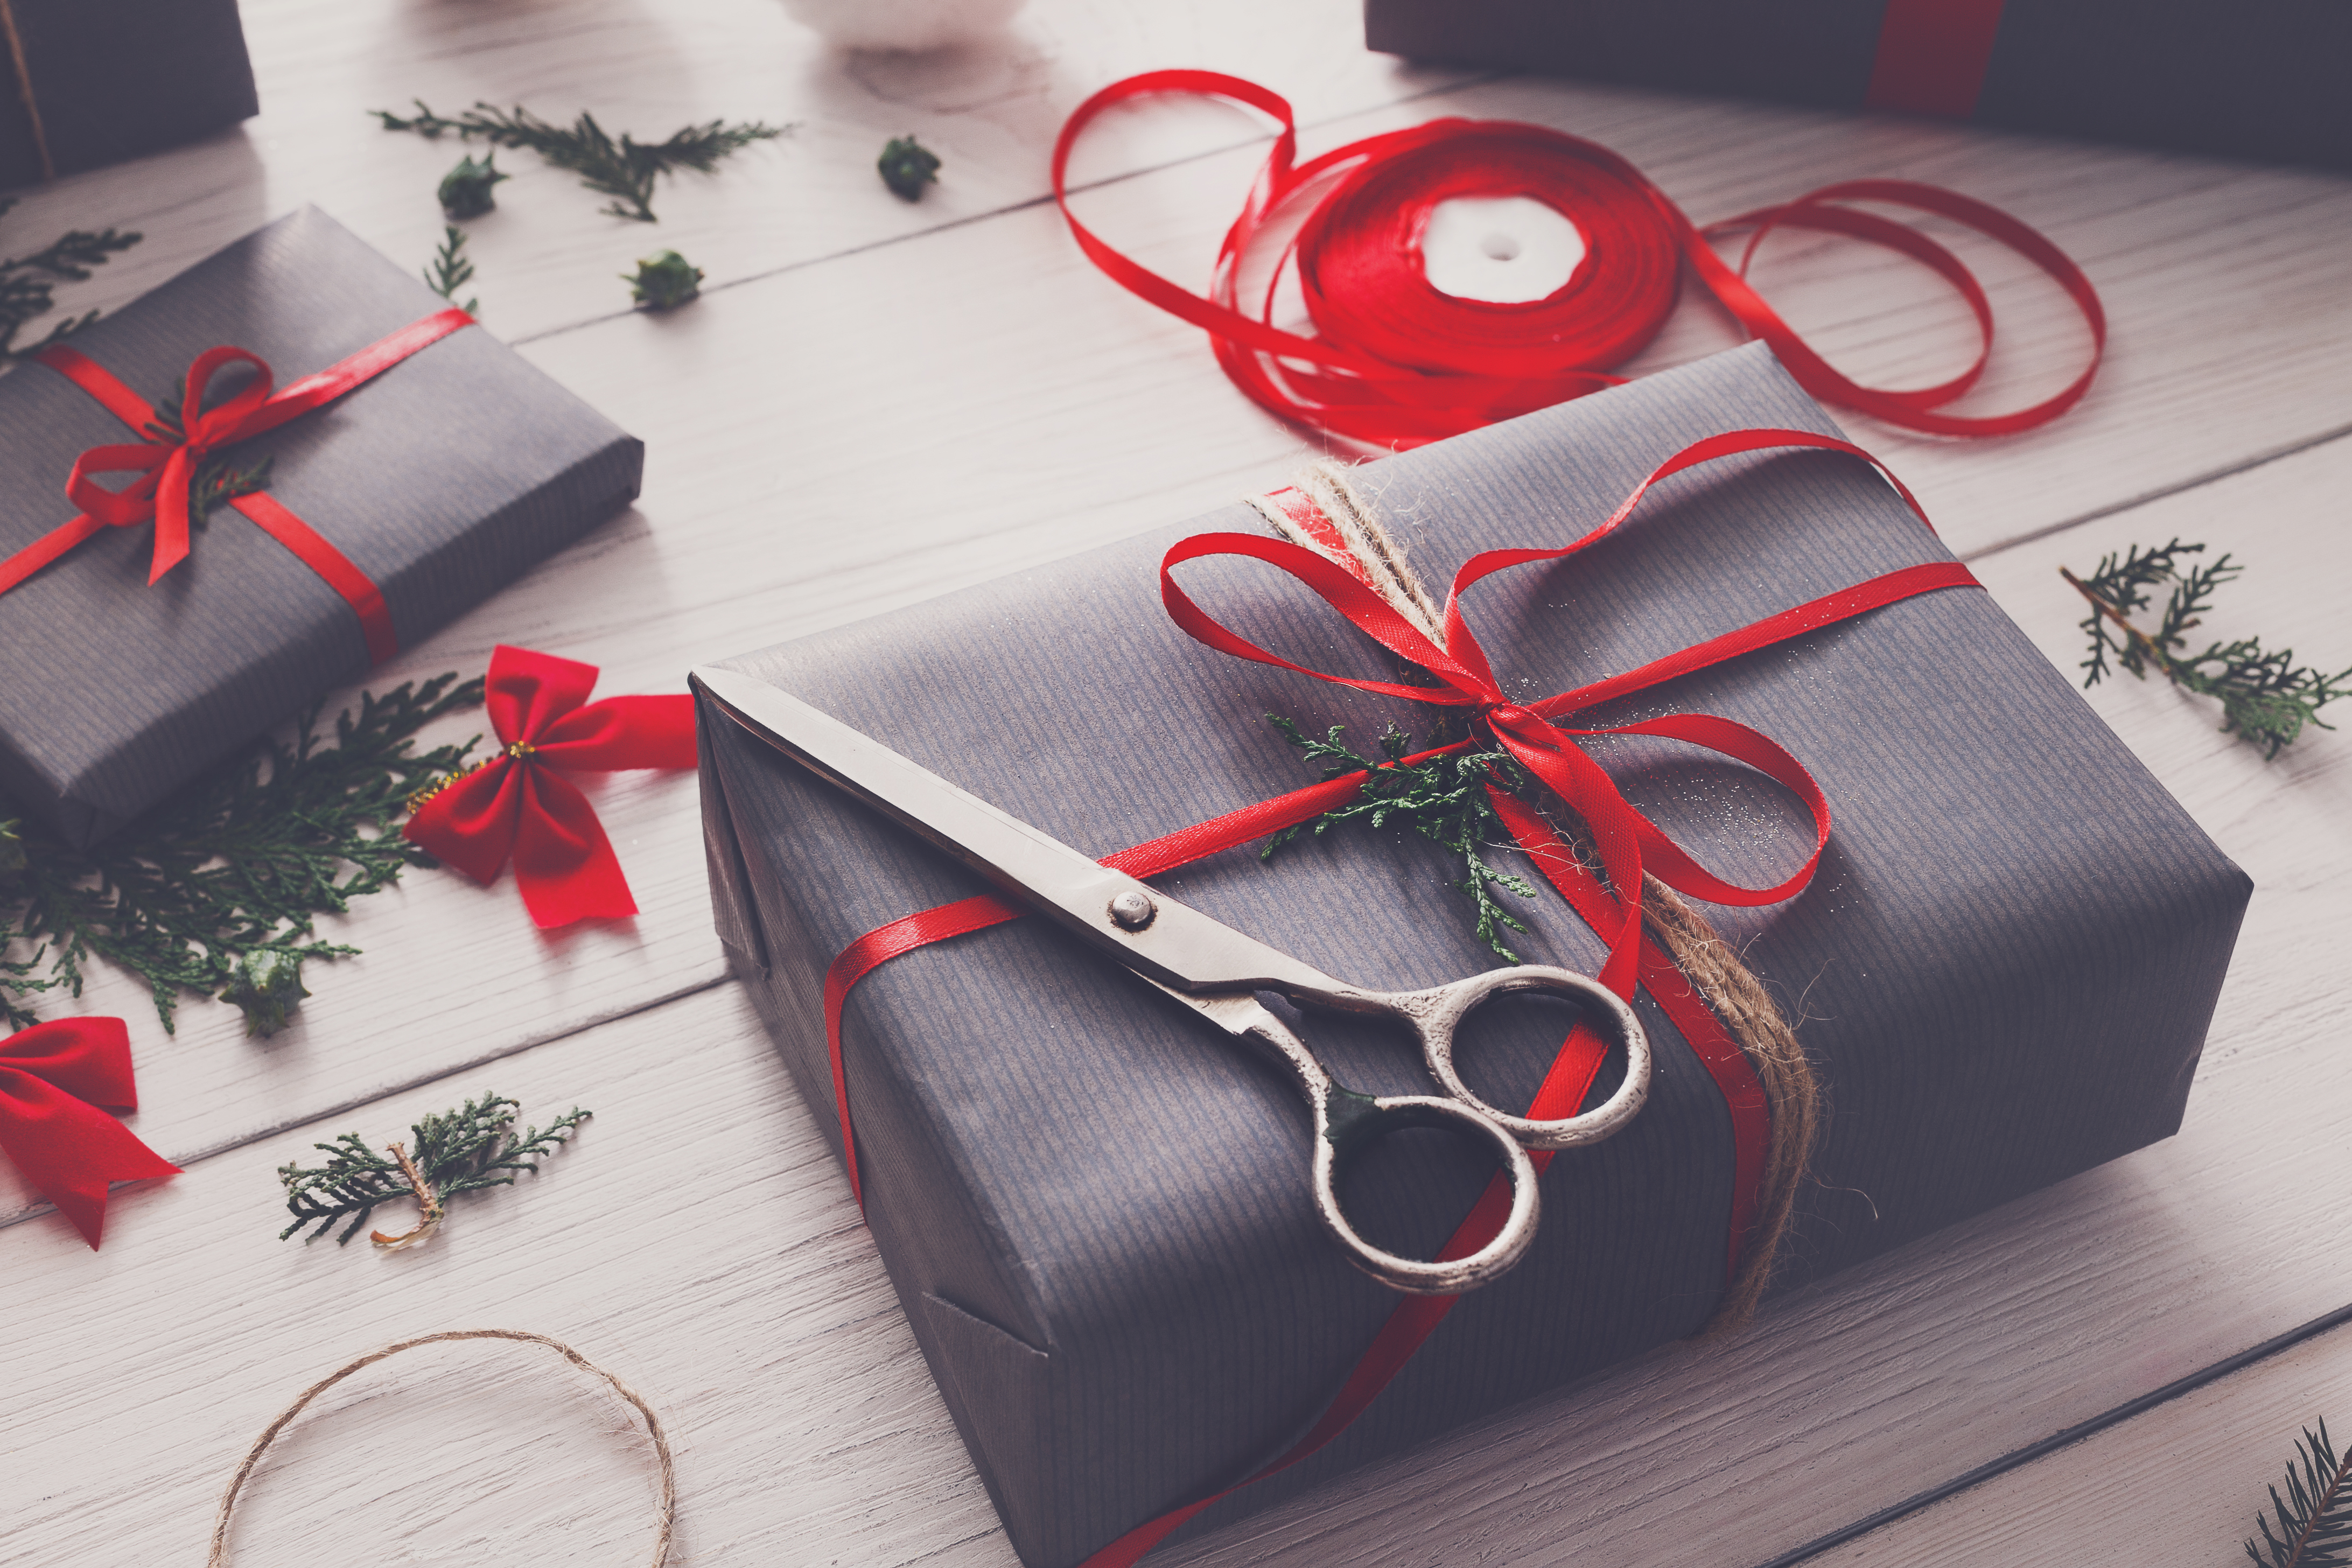 6 tips for wrapping the perfect present